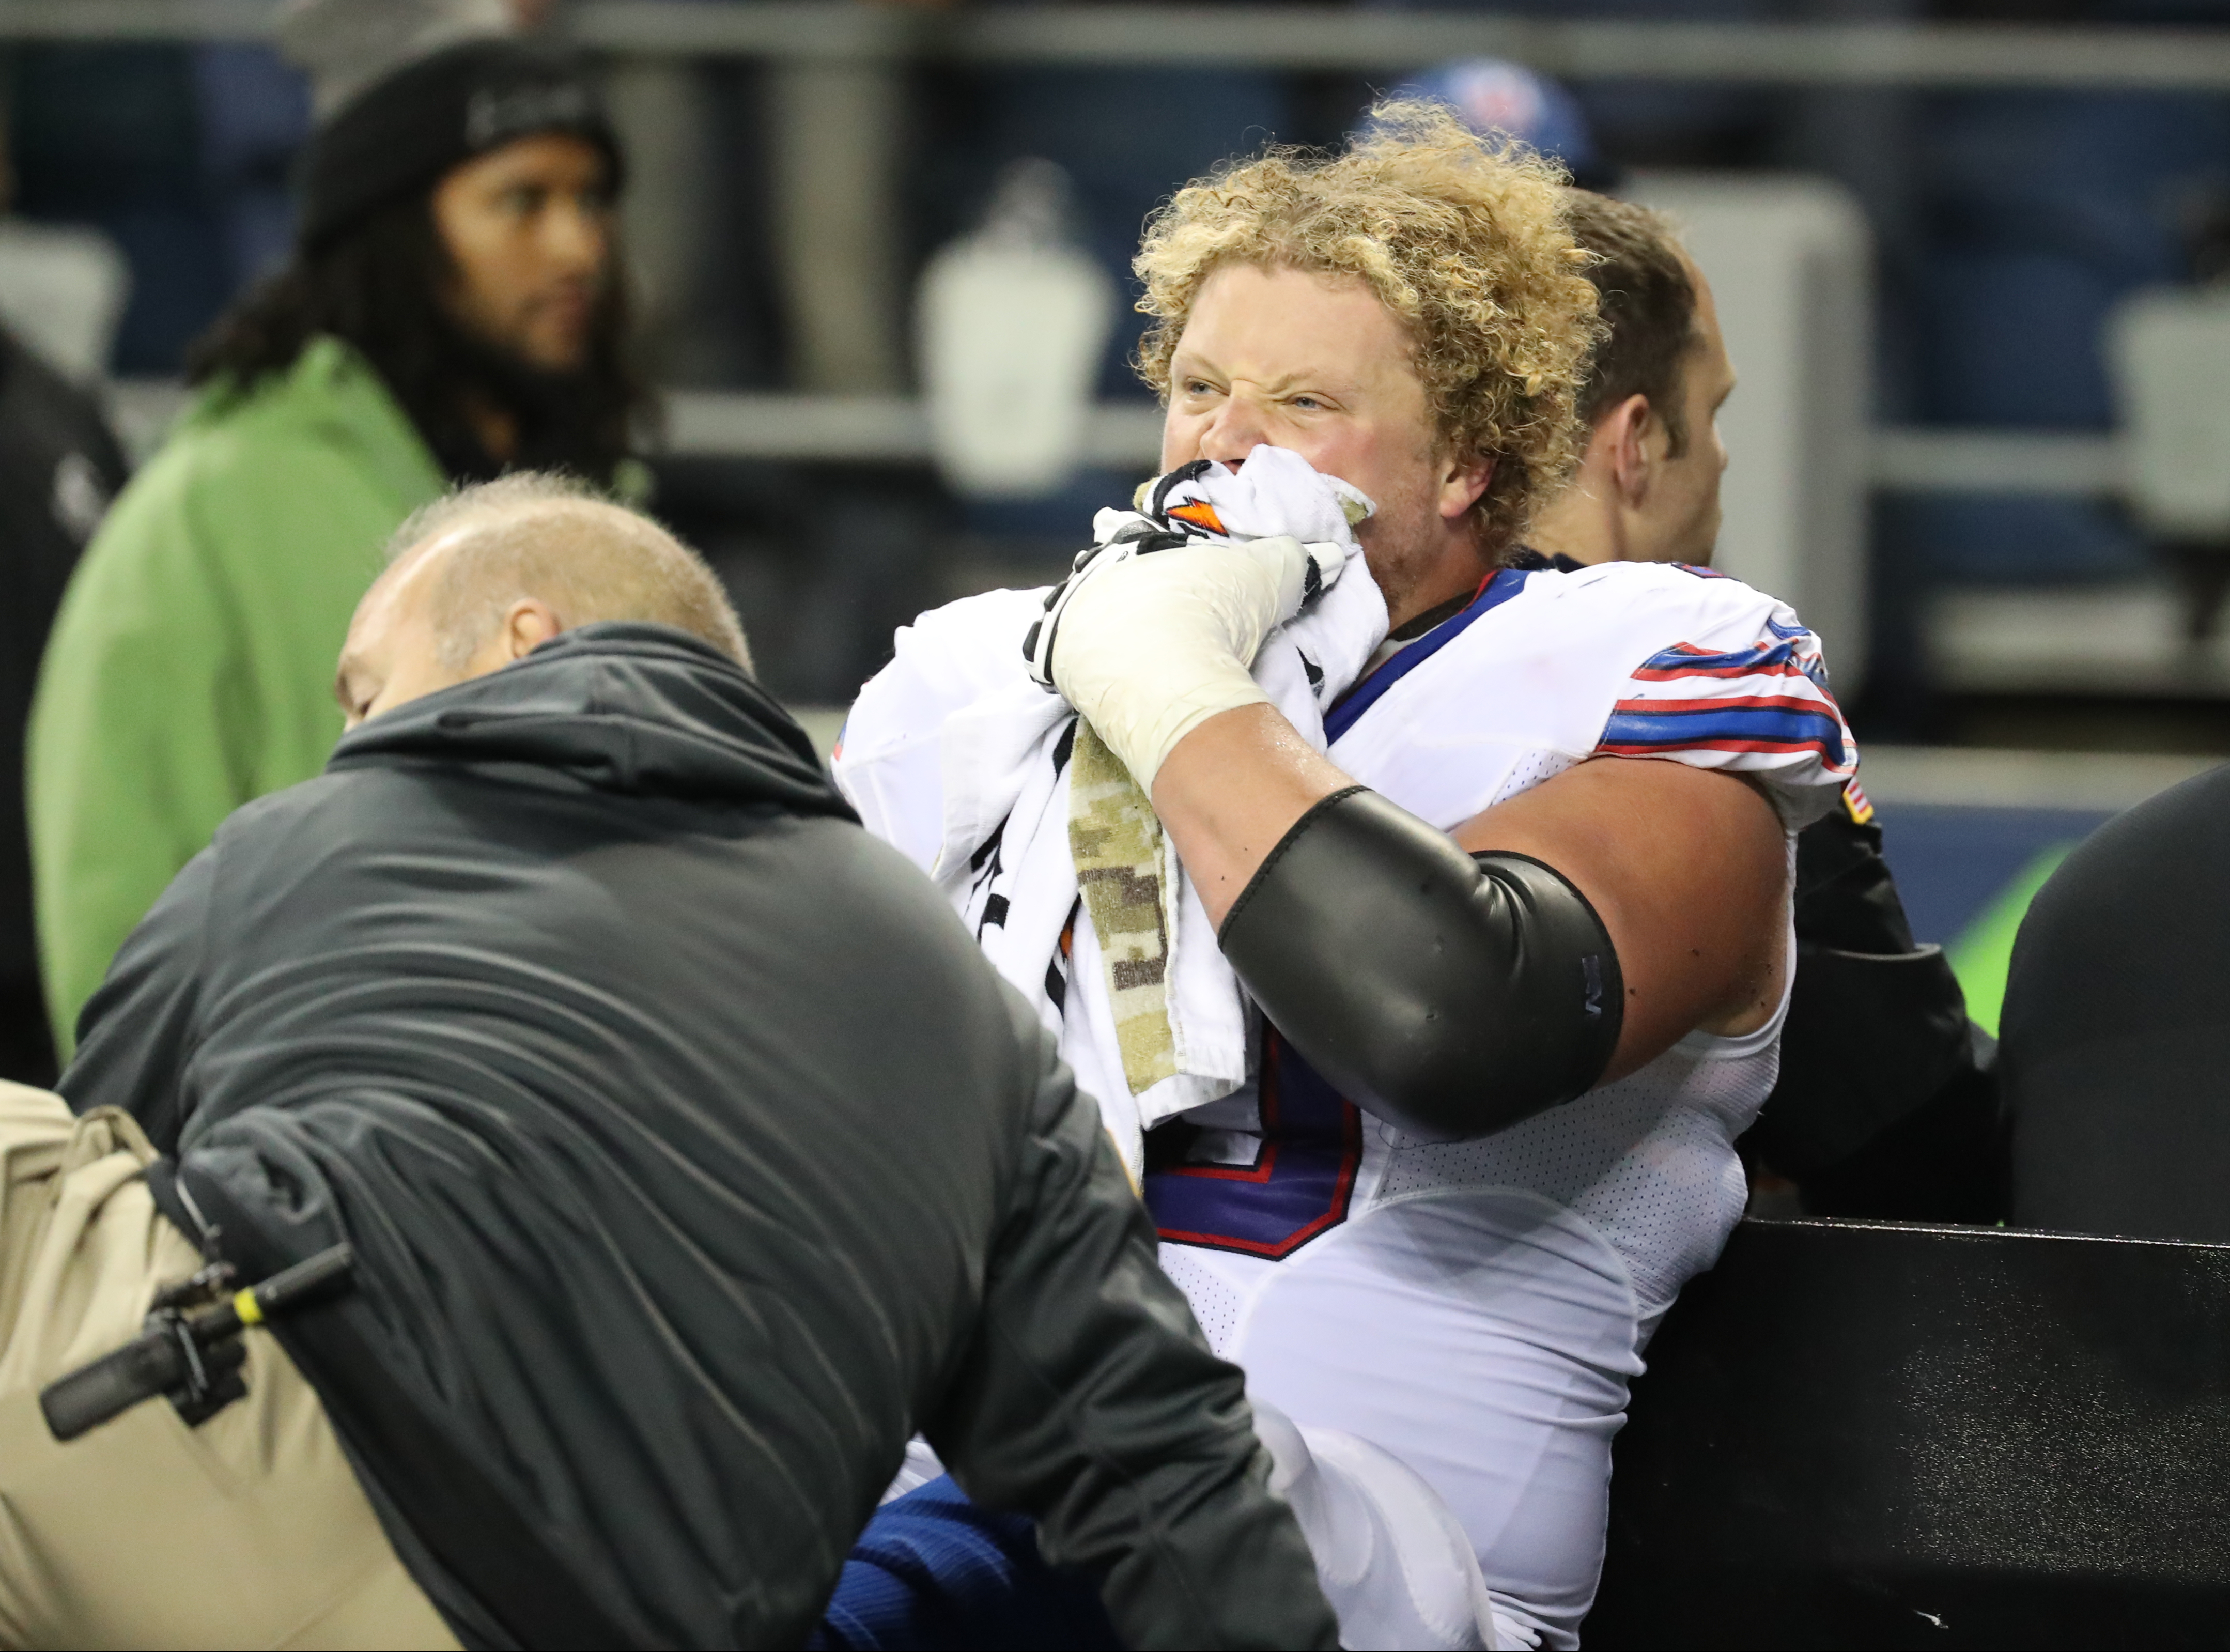 Buffalo Bills center Eric Wood (70) reacts as he is carted off the field after injuring a leg during the third quarter of a game against the Seattle Seahawks. (James P. McCoy/Buffalo News)